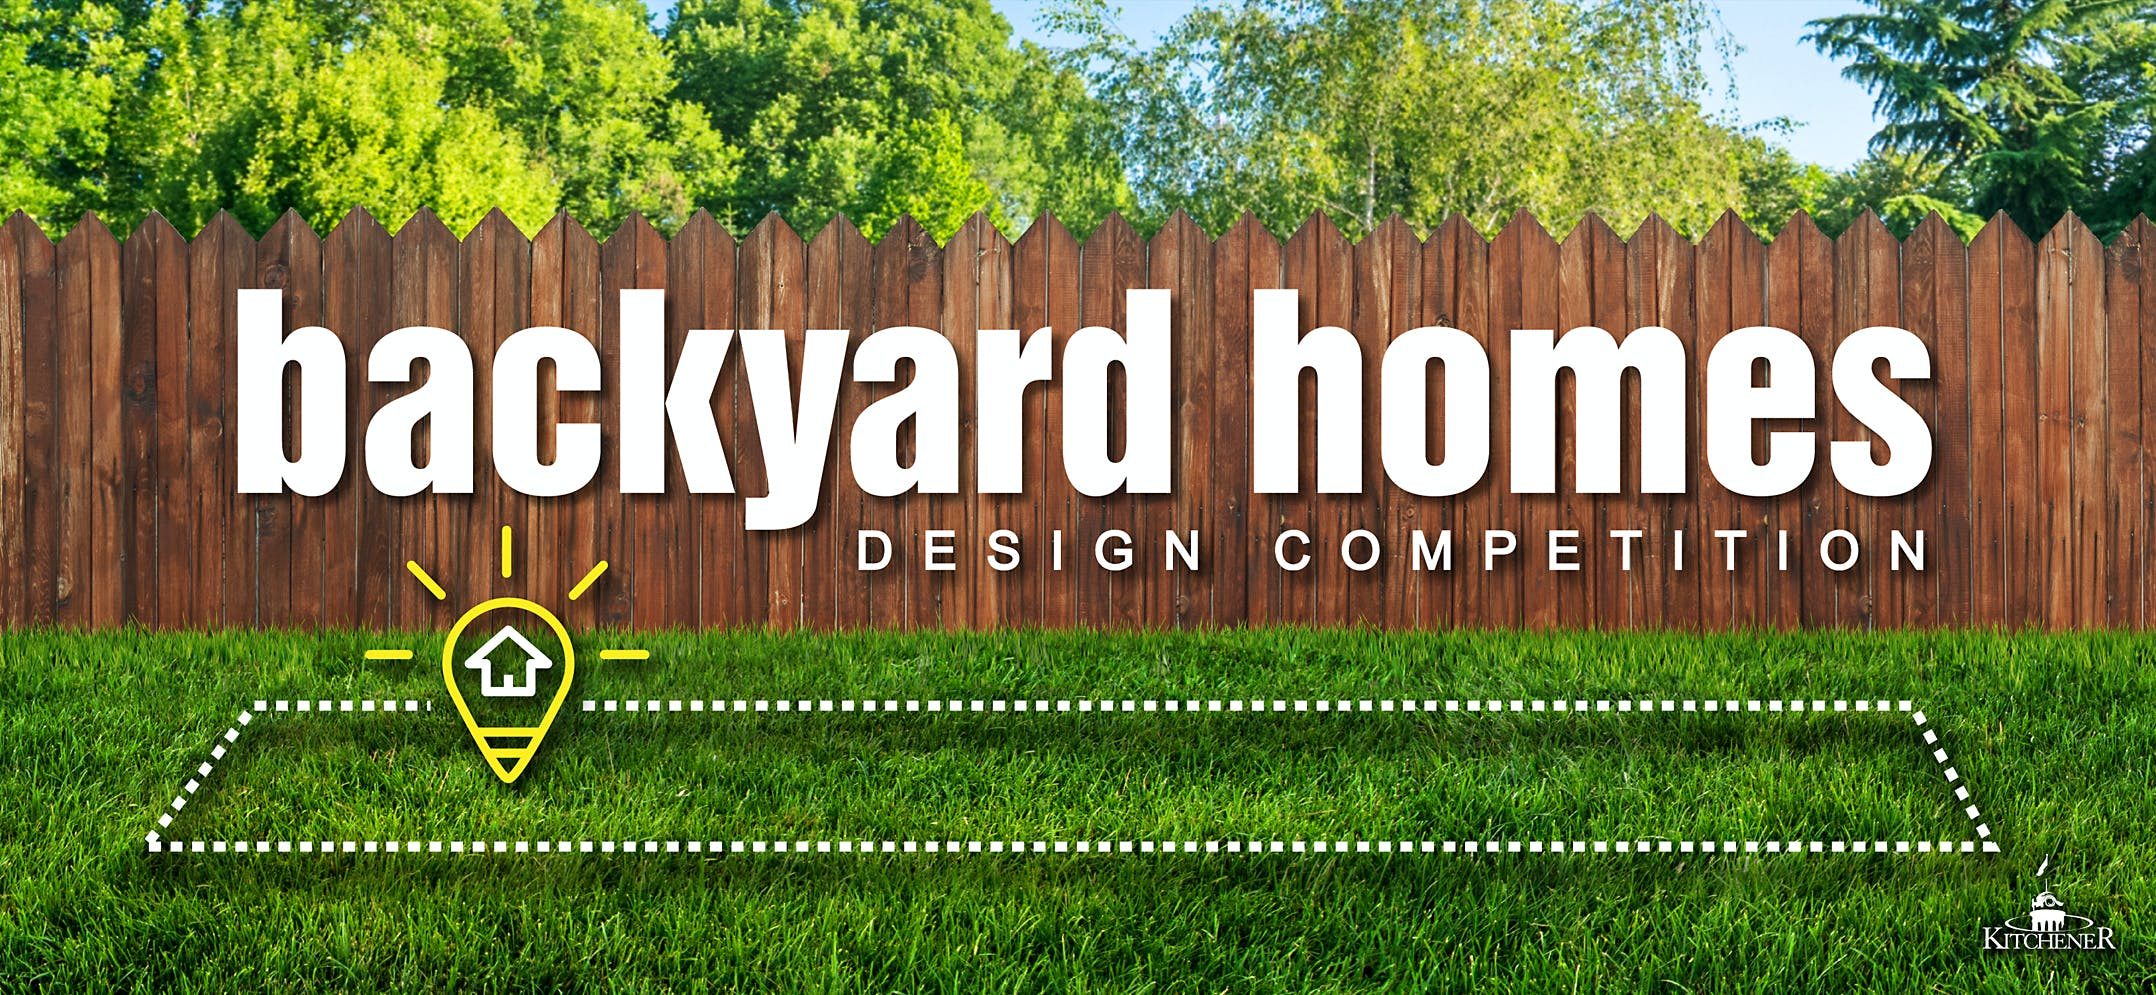 A grassy backyard bordered by a wooden fence with the competition logo overlaid on top